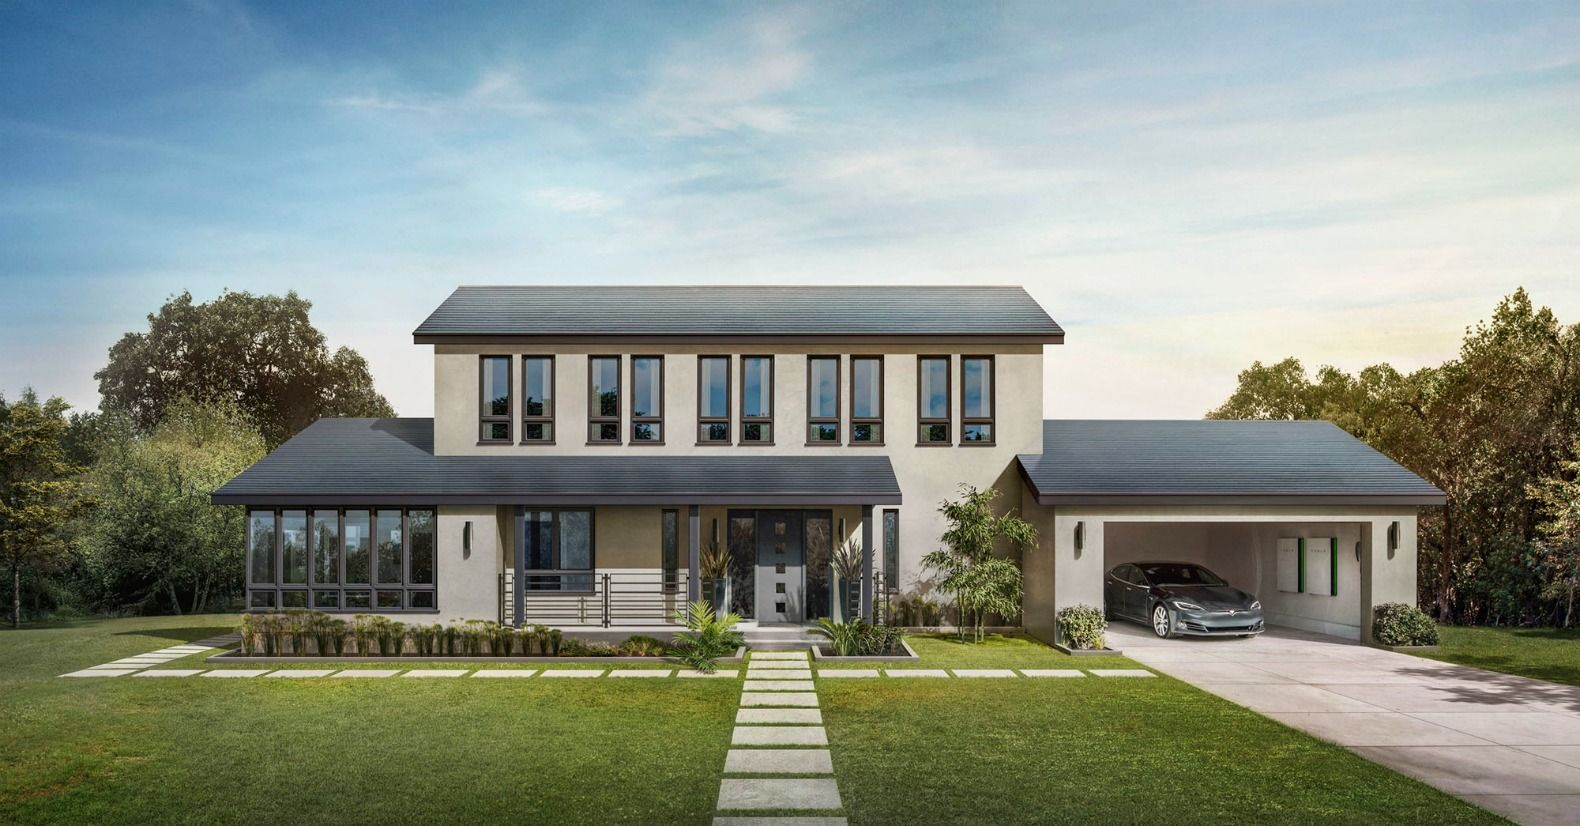 Tesla S New Solar Roof Is Actually Cheaper Than A Normal Roof Tesla Solar Roof Solar Tiles Solar Roof